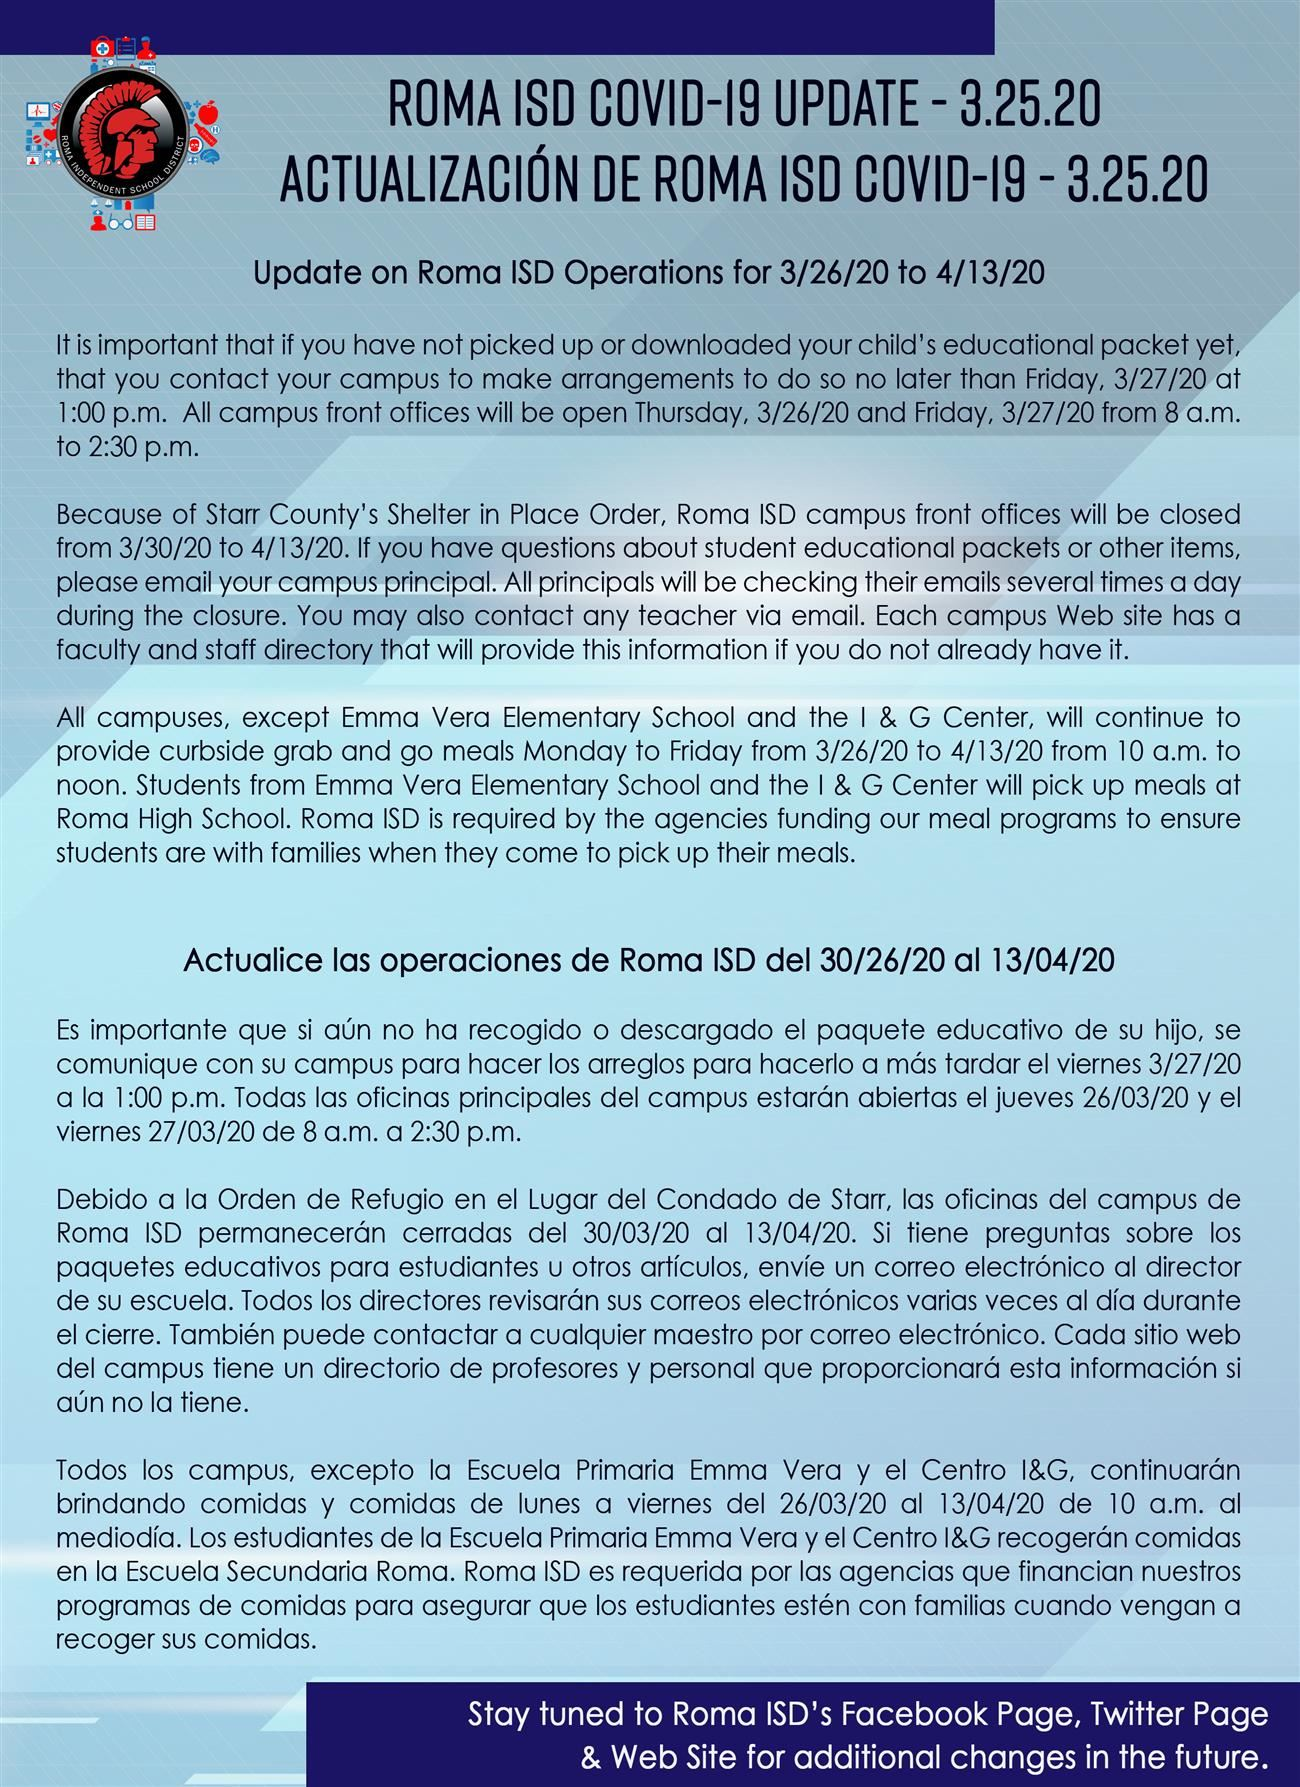 3.25.20 Roma ISD Covid-19 Operations Update